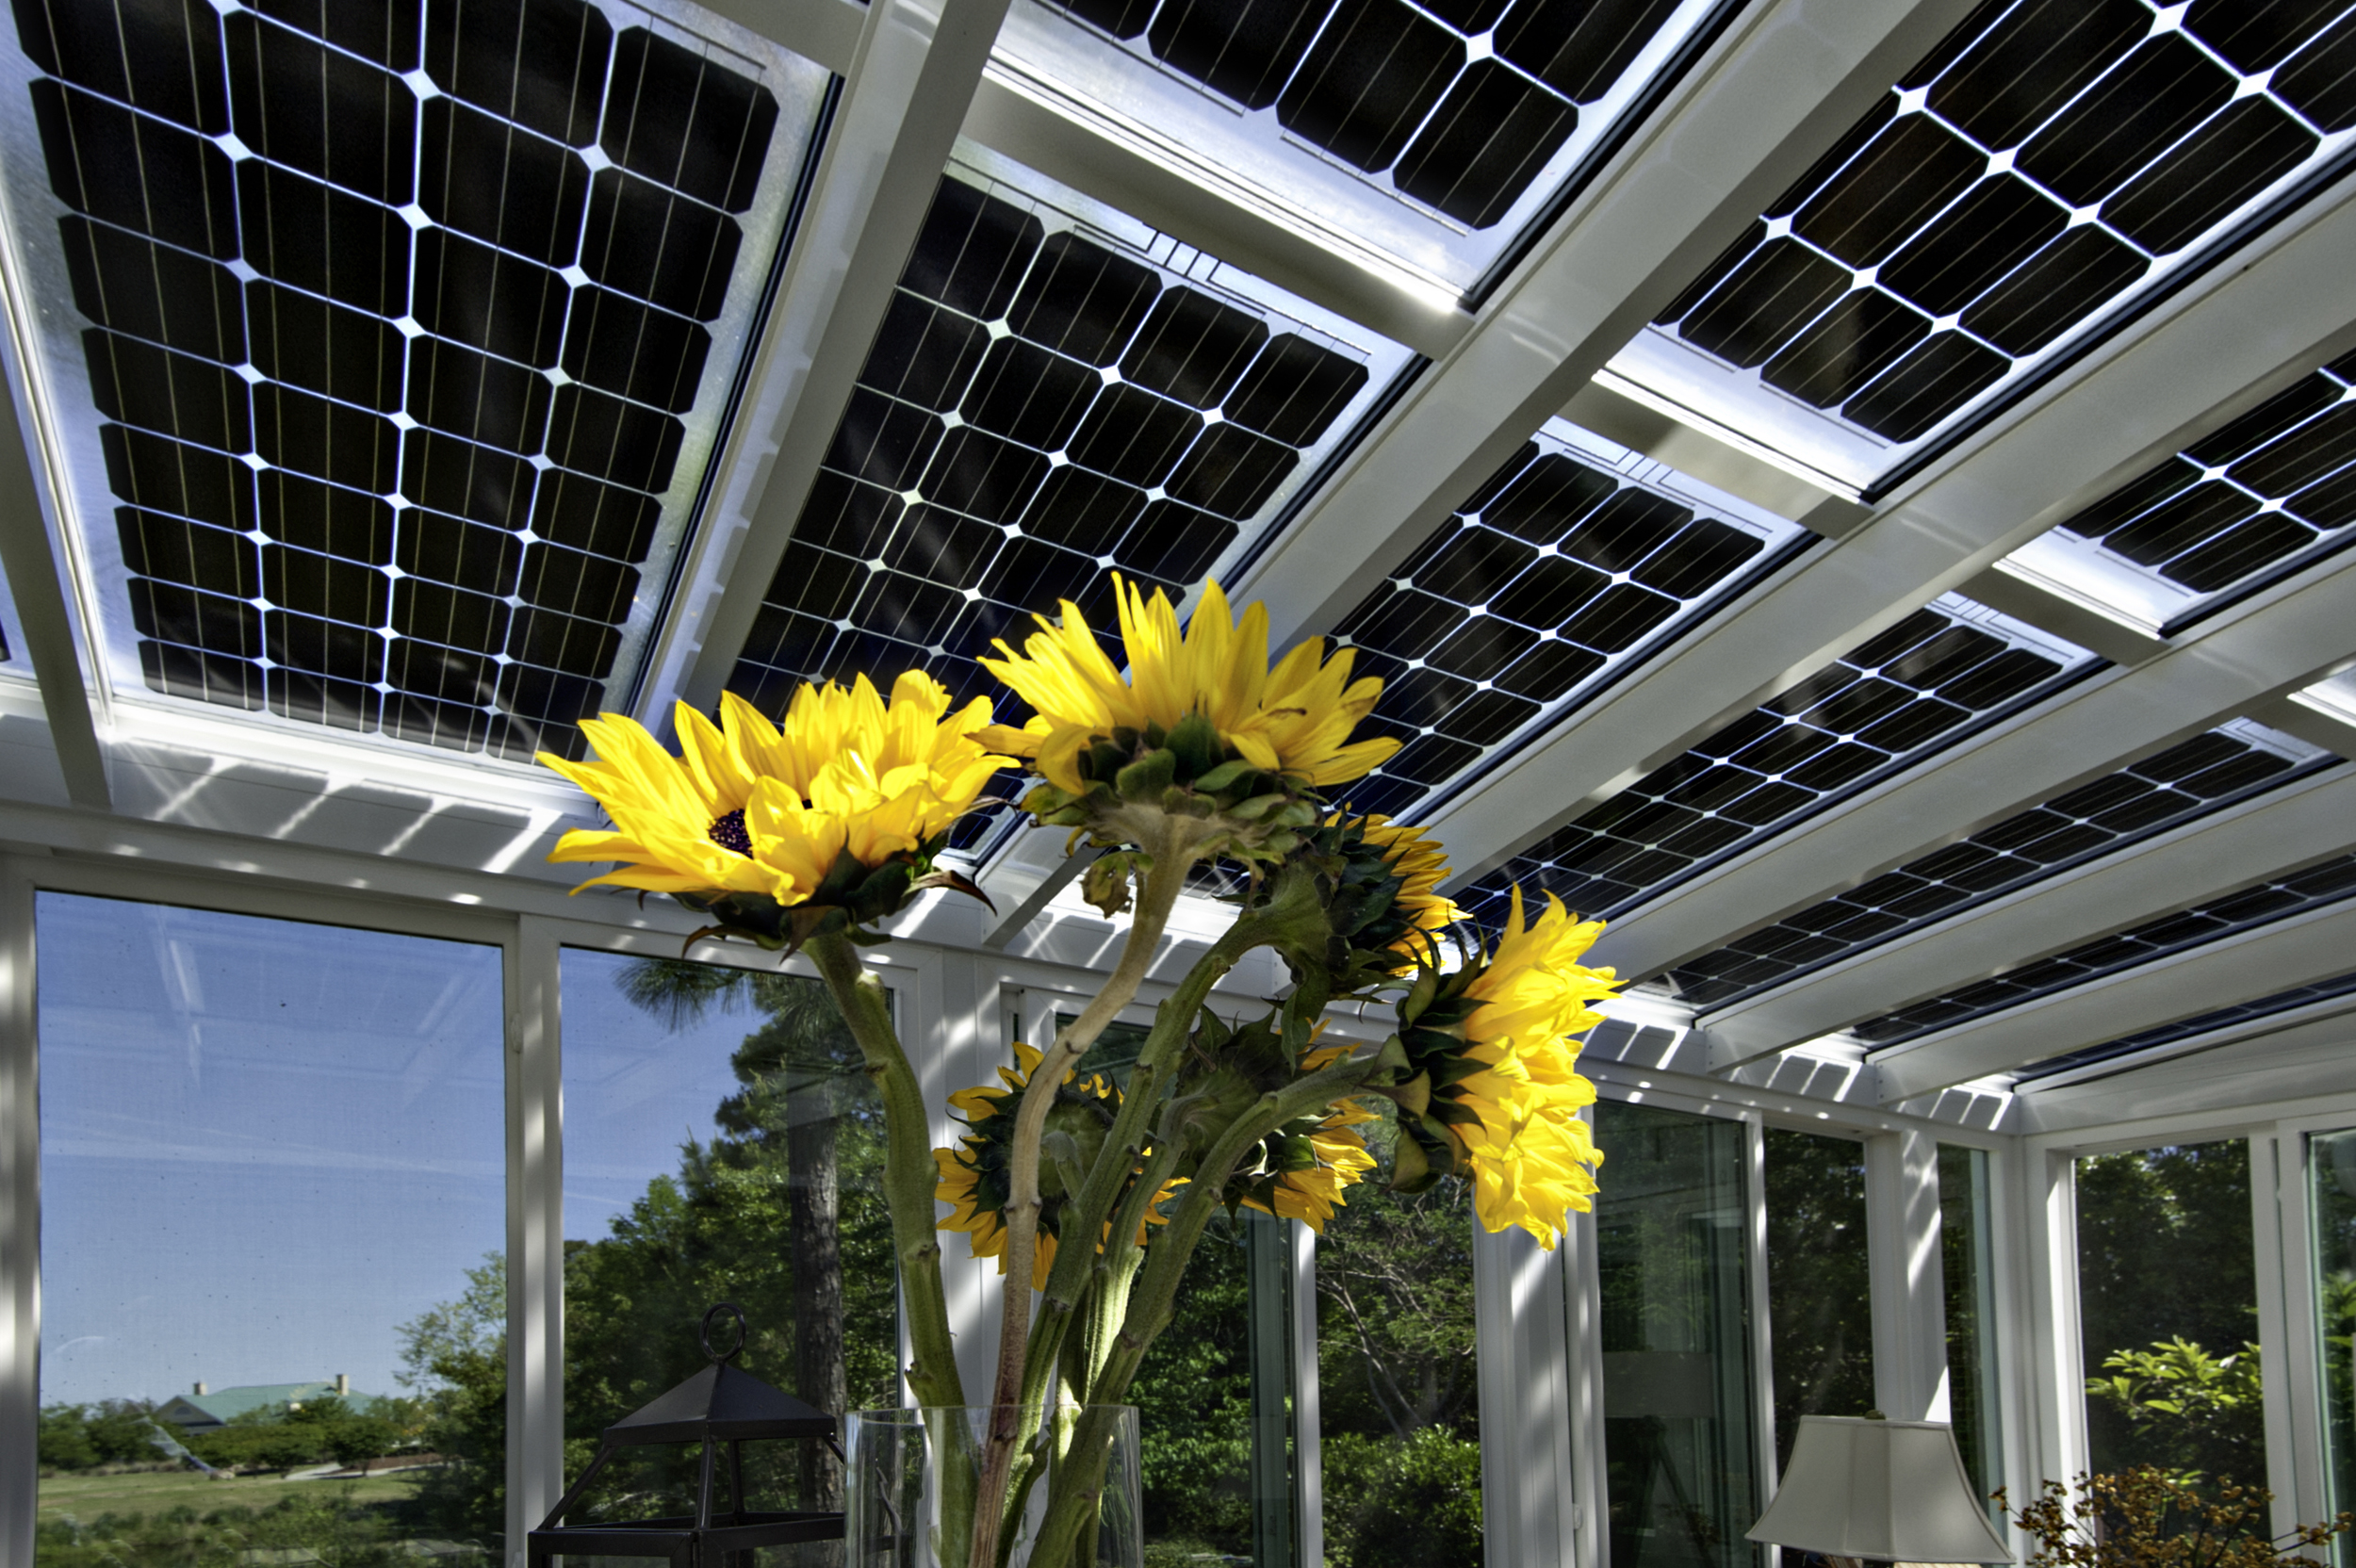 Solar Canopies Awning Systems Wiring In Cells Might Stop Reflecting Light One Up